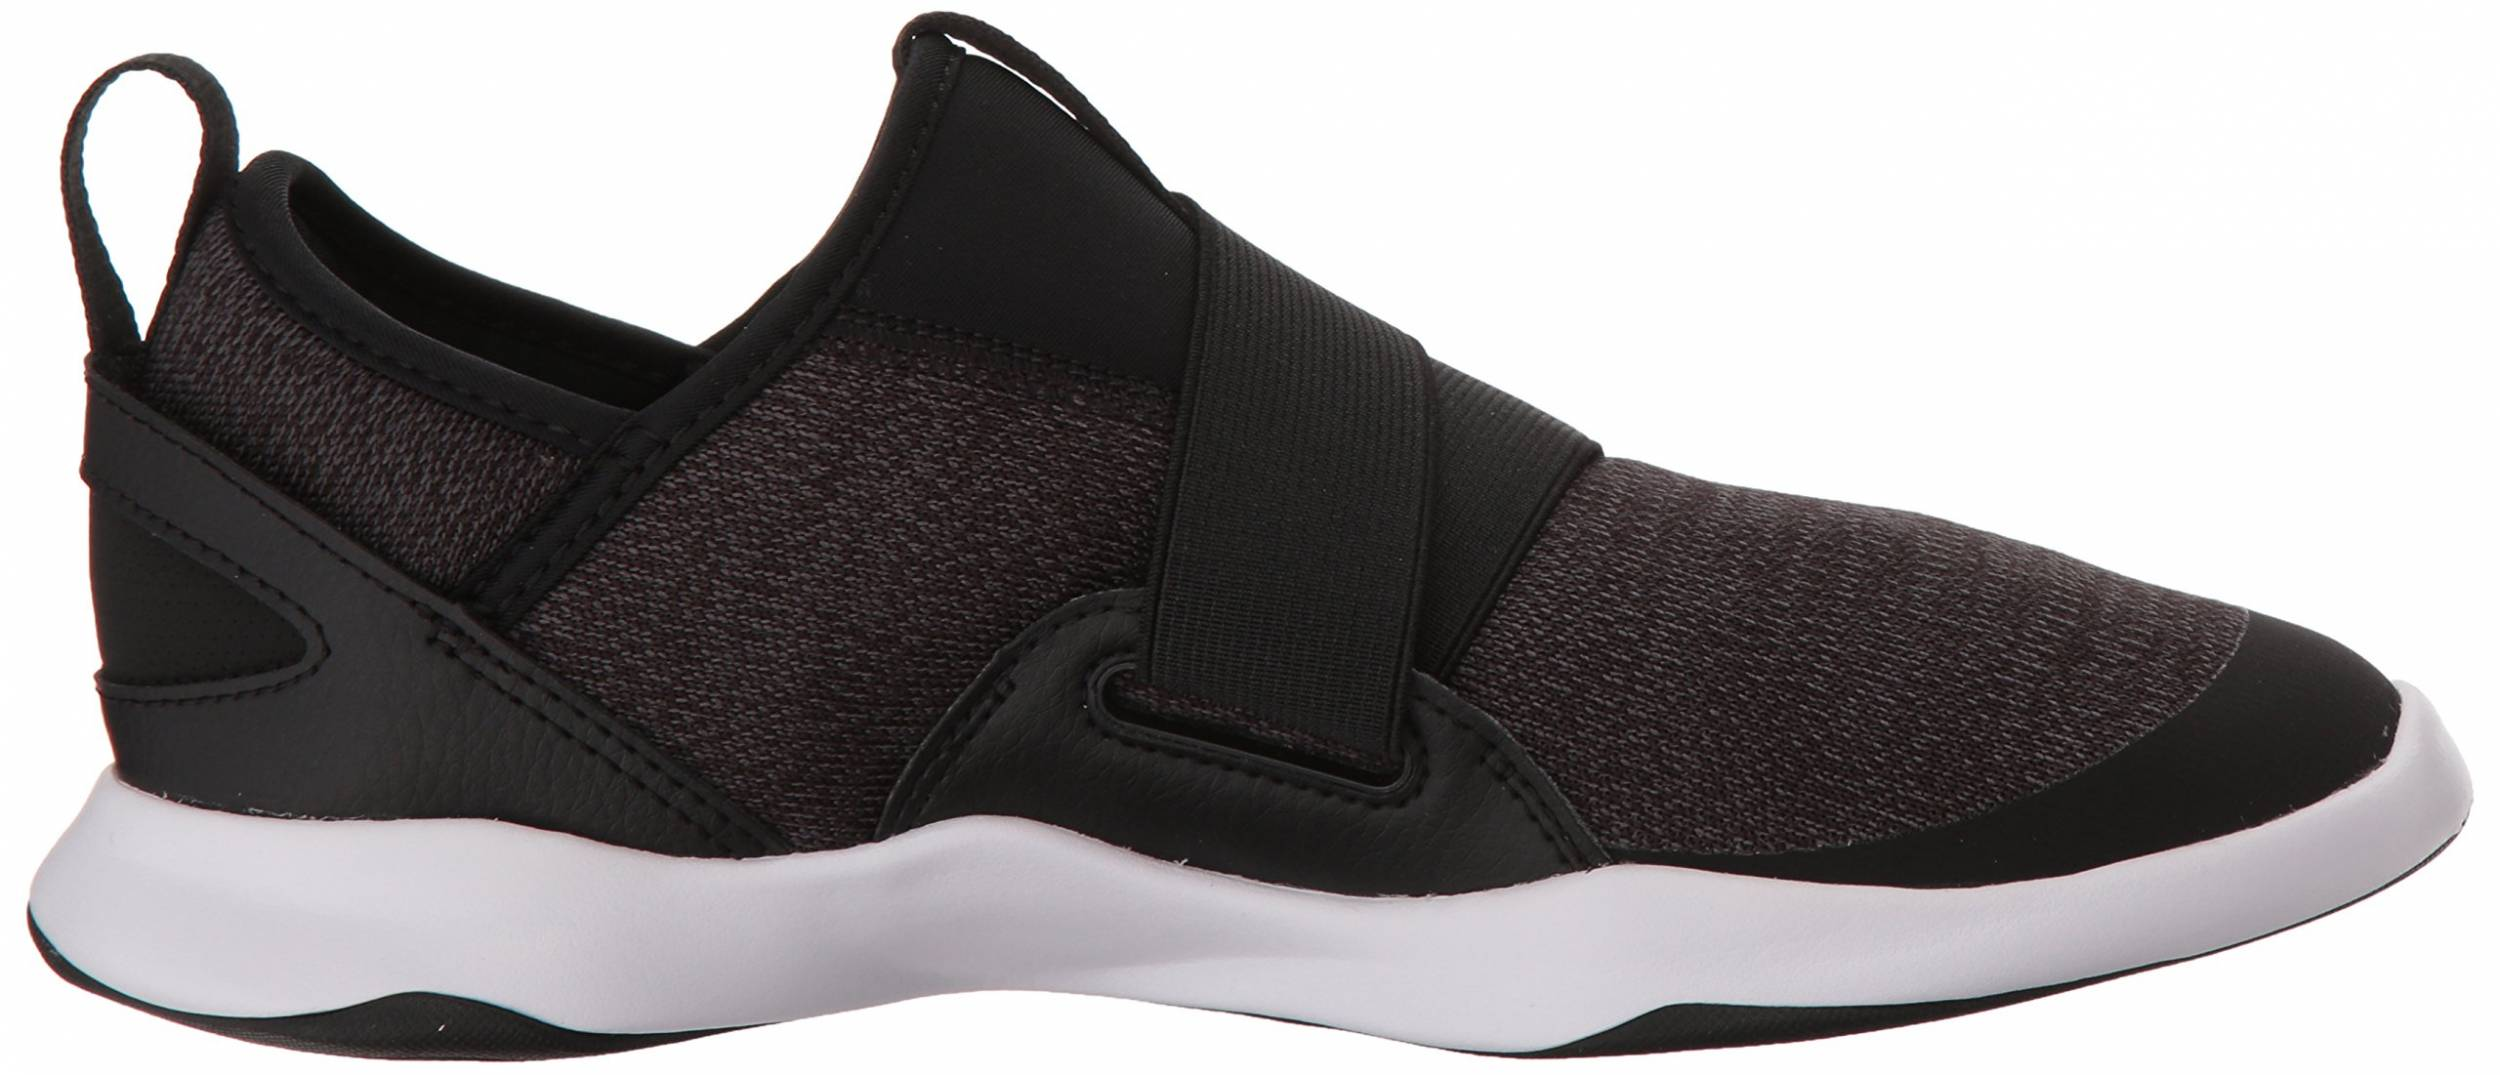 Puma Dare AC sneakers in 3 colors (only $35) | RunRepeat